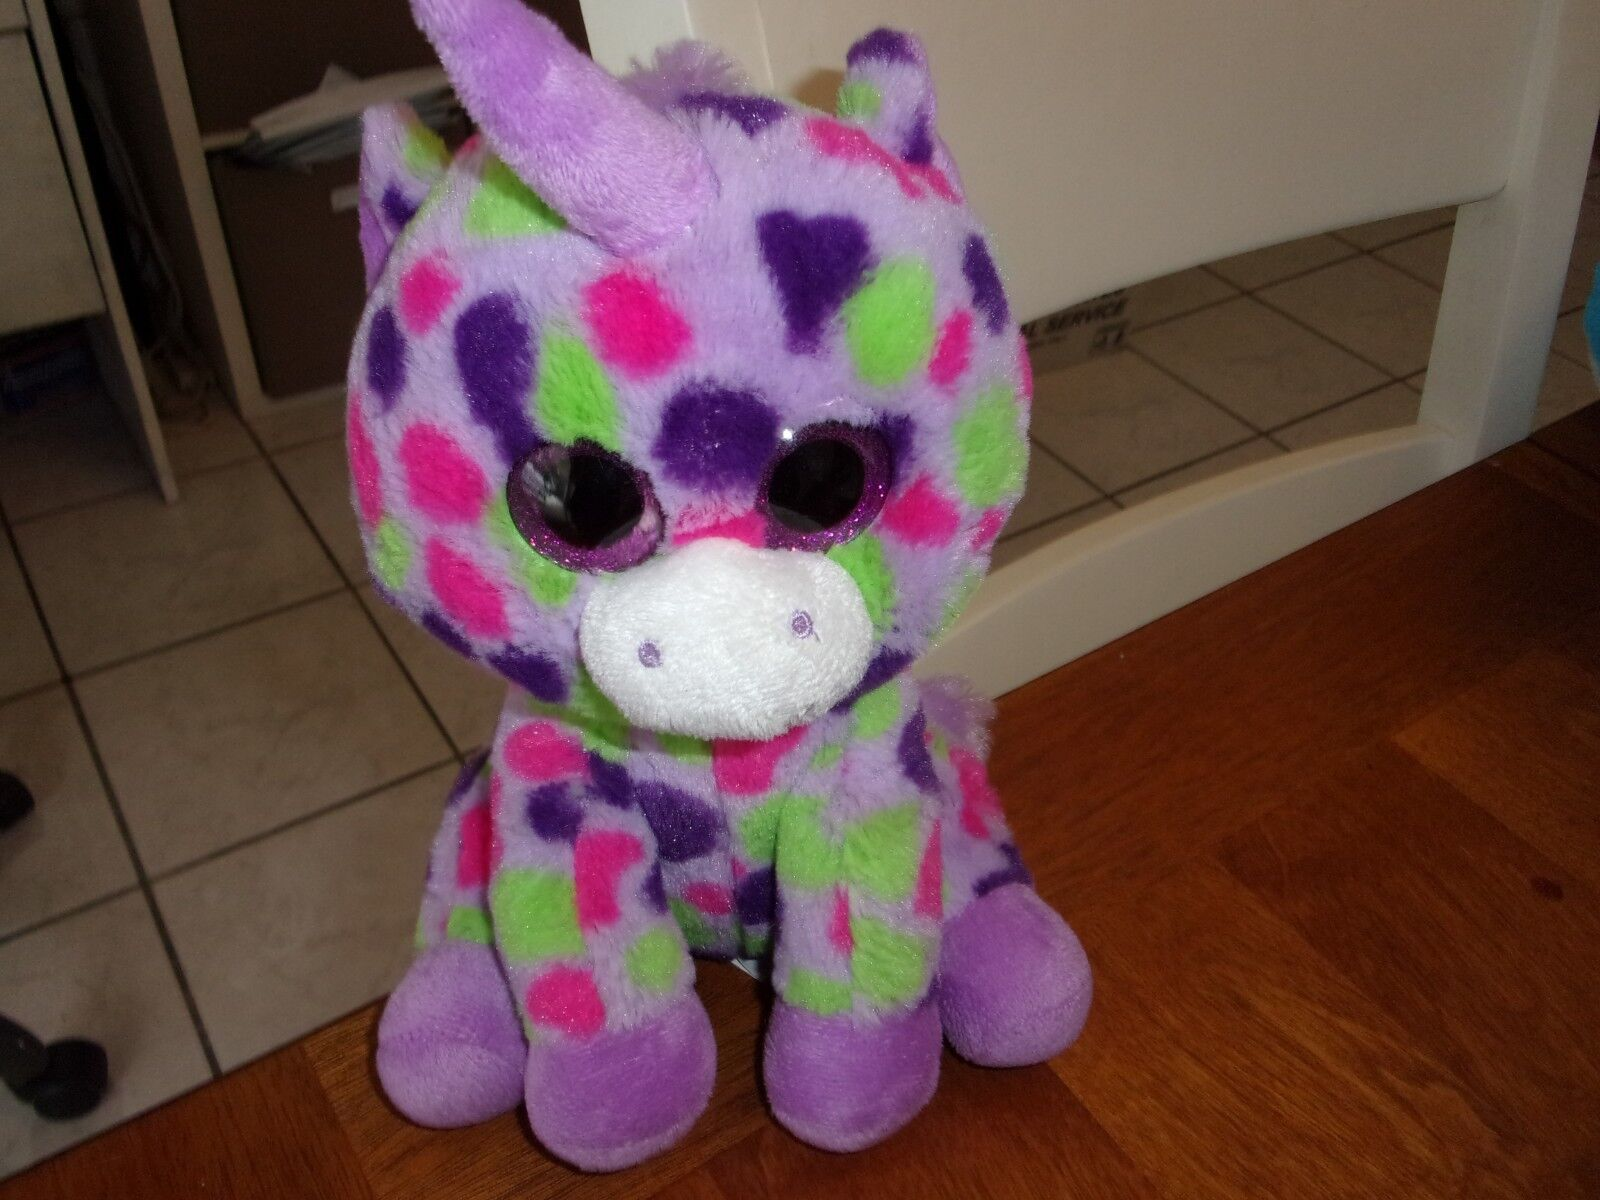 Tabourets Walmart Wal Mart Plush Purple Pink Unicorn Big Eyes Spot 8 Walmart Green